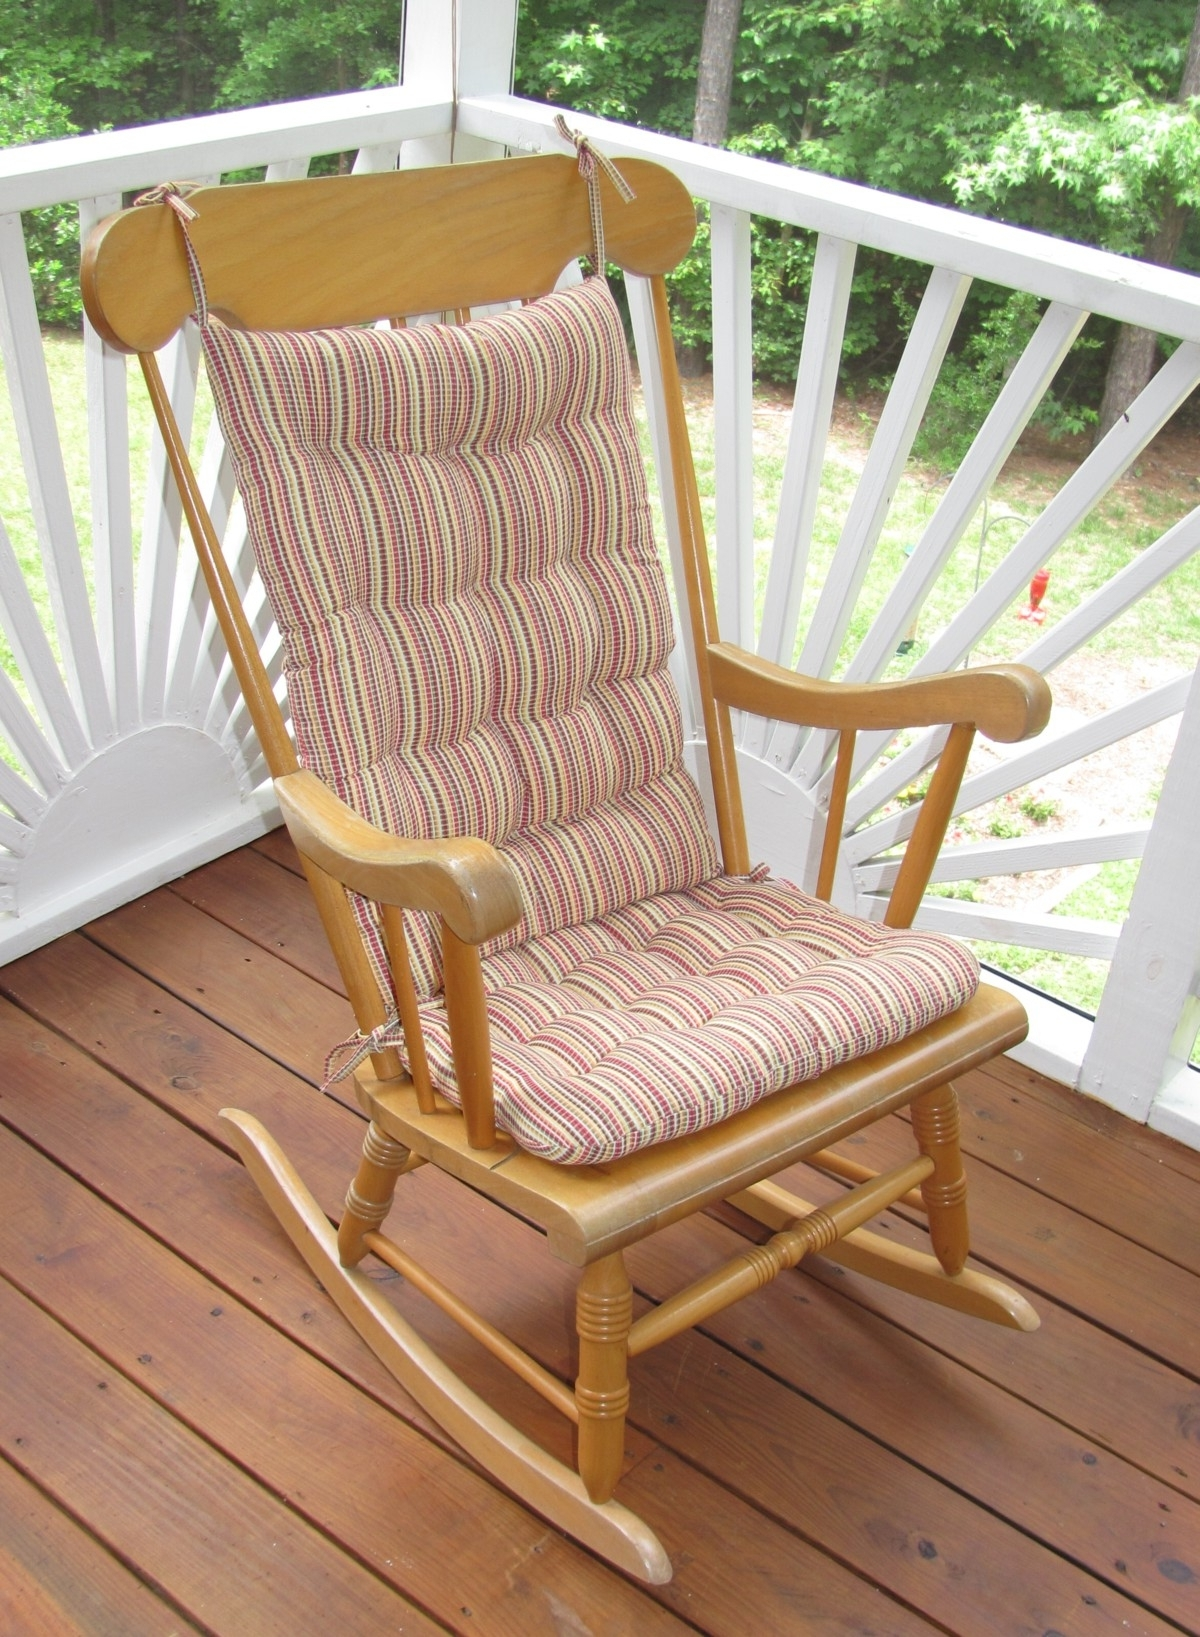 Most Popular Outdoor Rocking Chair Cushions Strip : Beautiful Outdoor Rocking In Rocking Chair Cushions For Outdoor (View 10 of 15)